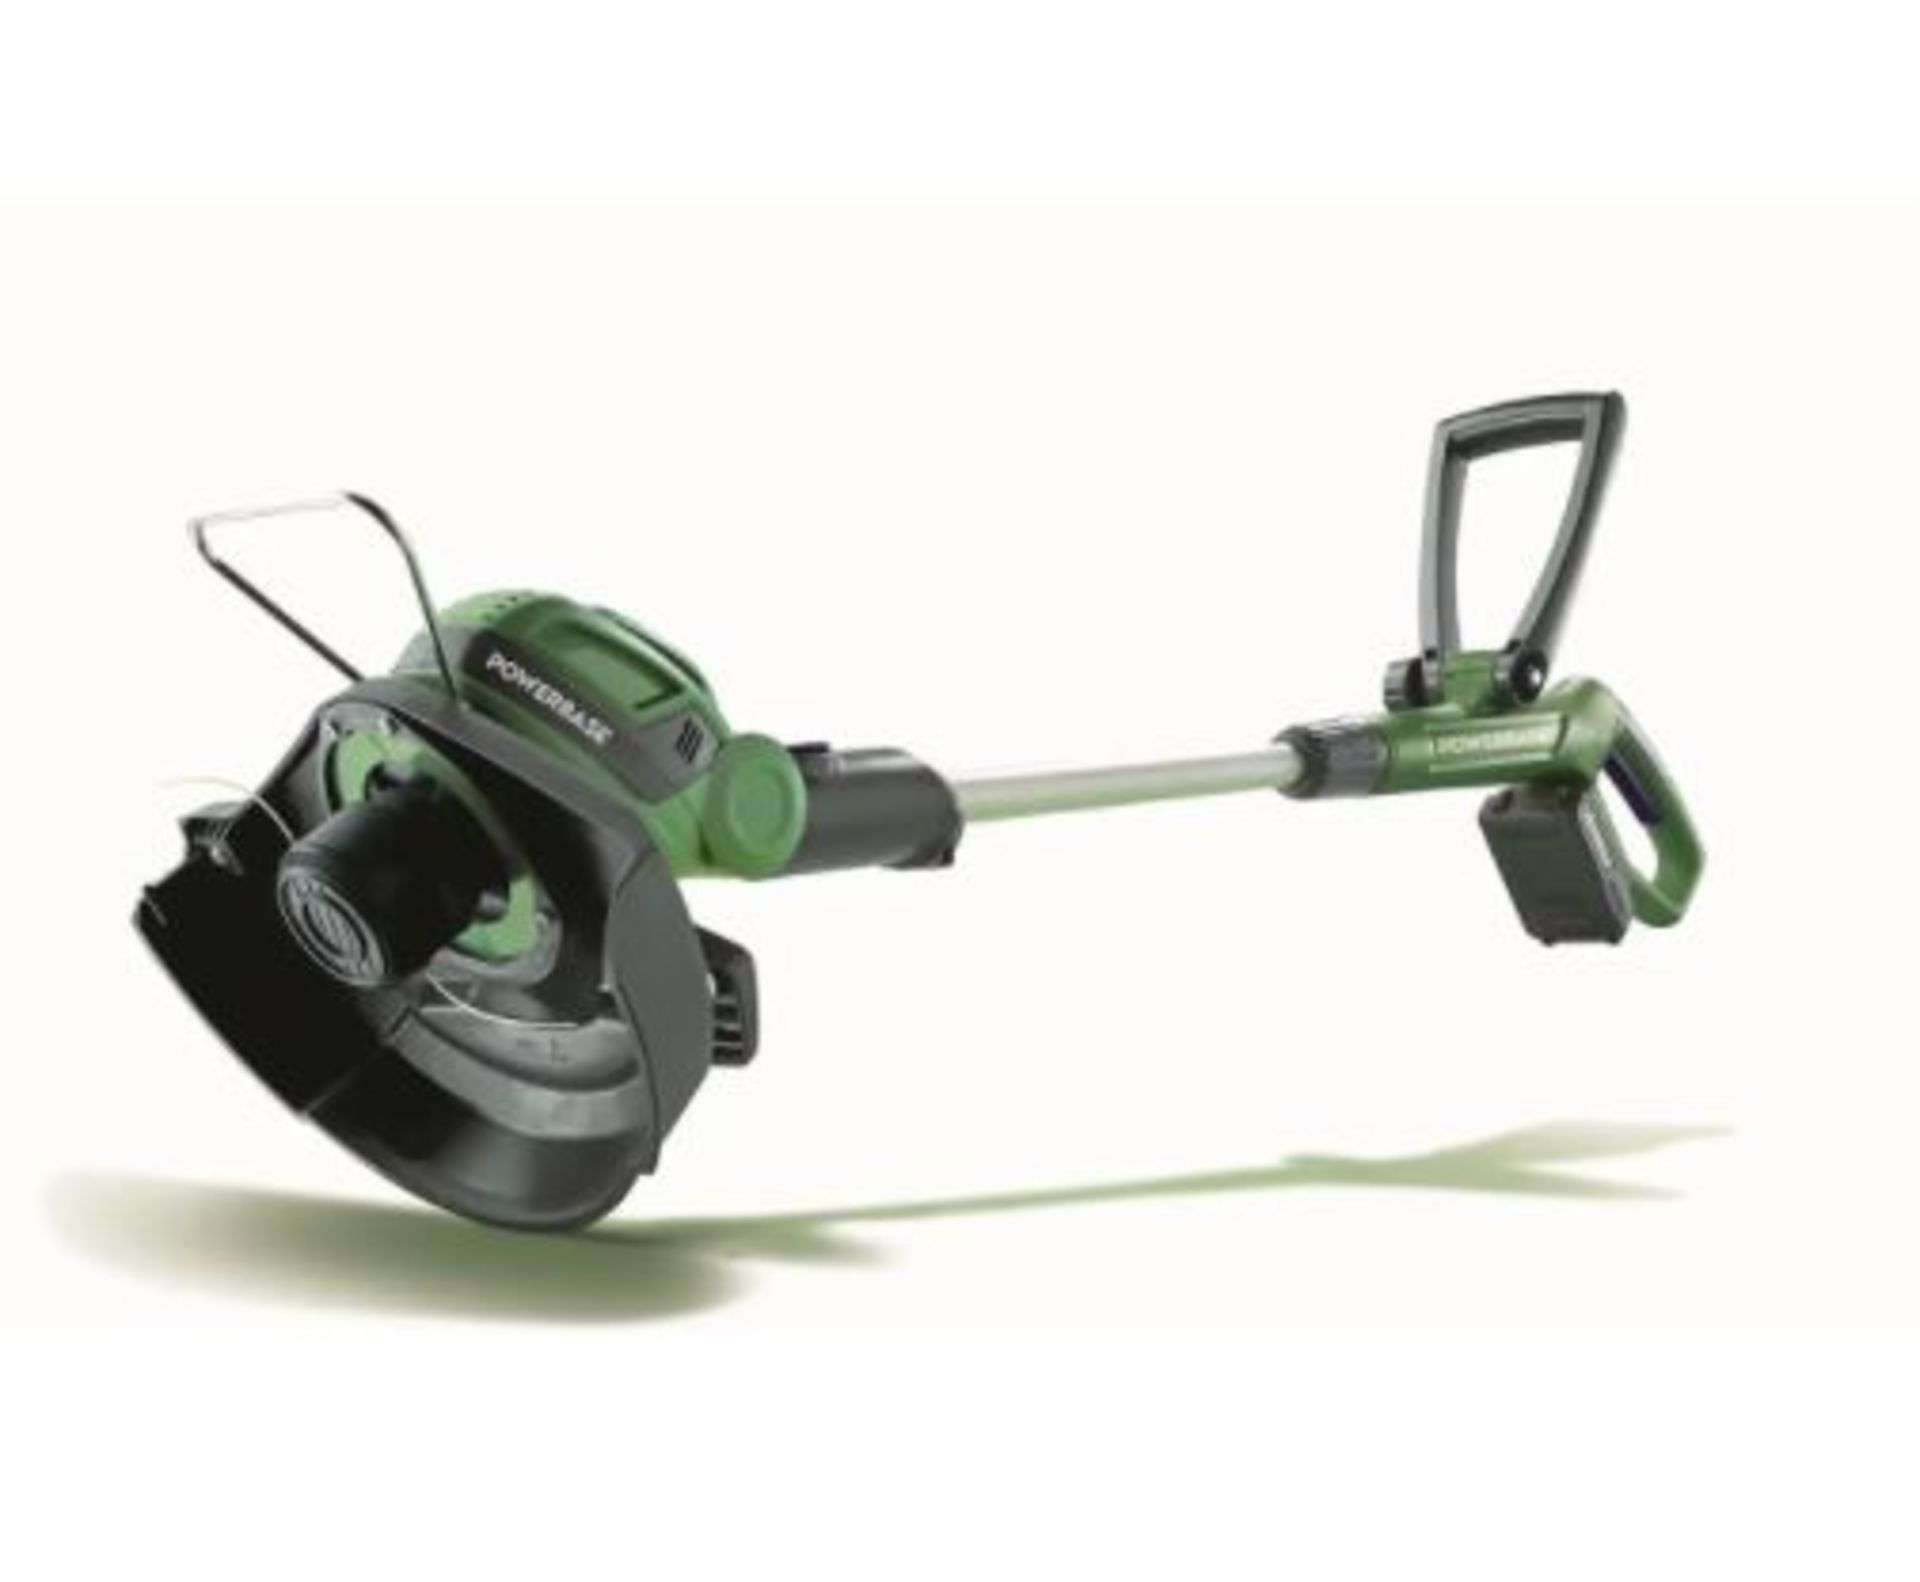 (P5) 2x Powerbase Items. 1x 25cm 20V Cordless Grass Trimmer RRP £59 (Unit Appears Clean, Unused Wit